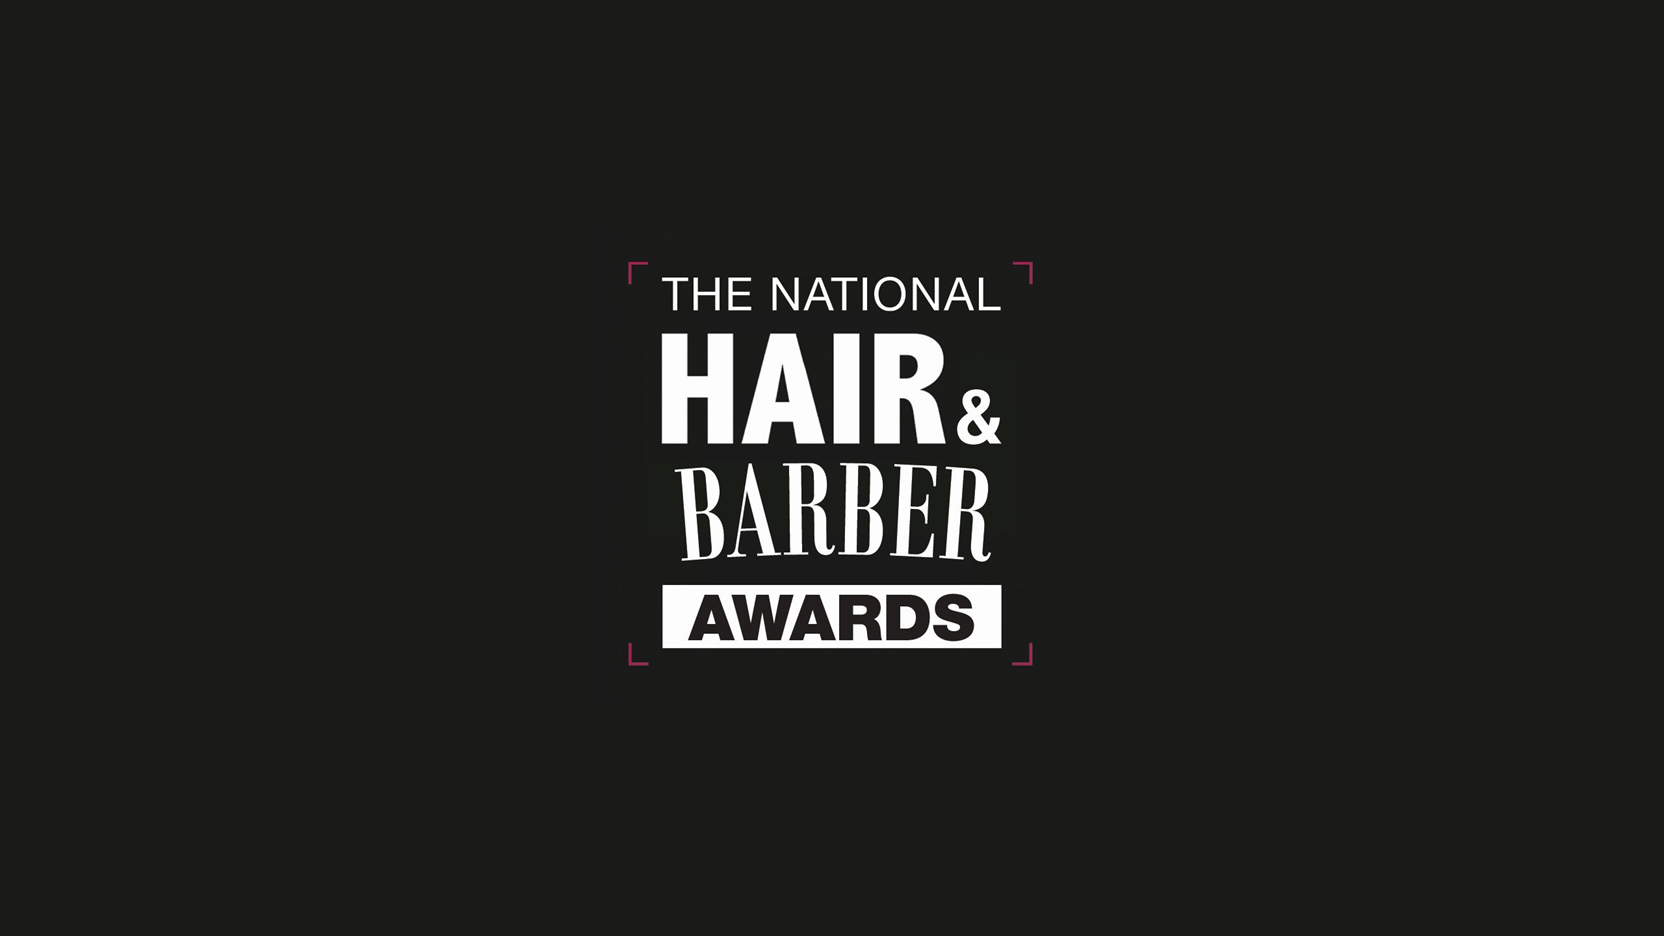 Get Groomed is a finalist in the National Hair & Barber Awards!